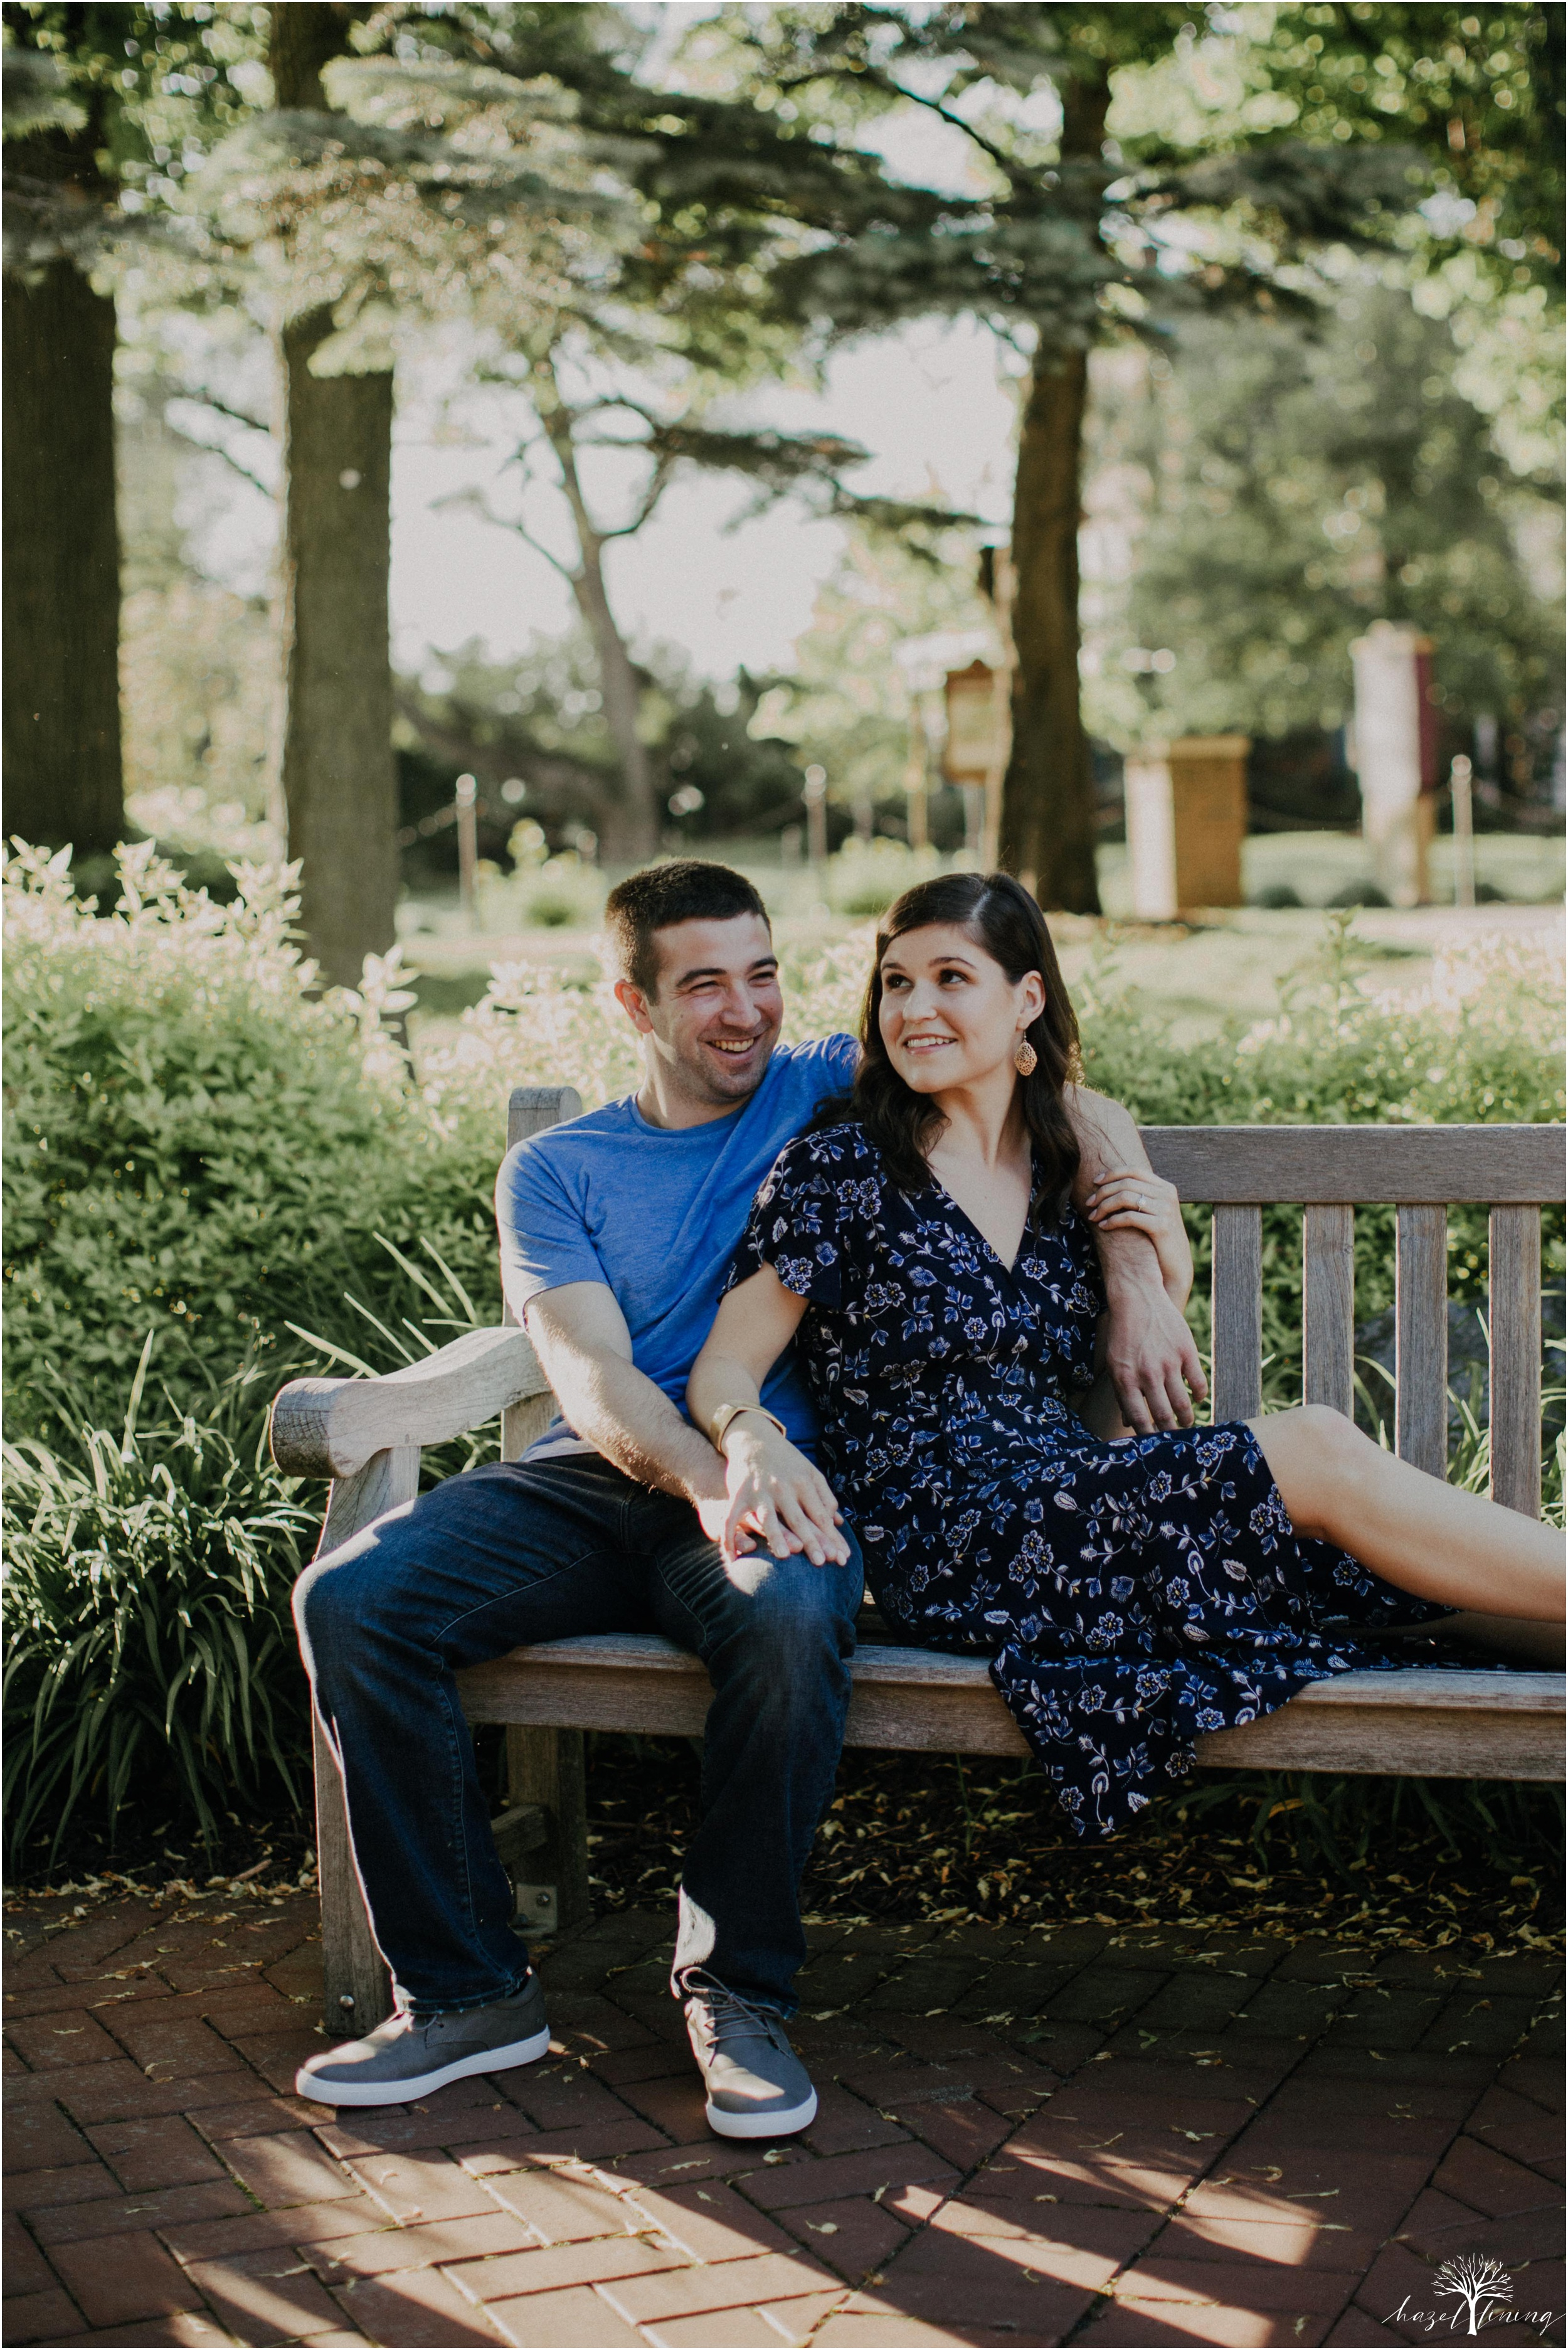 ellyn-jack-kutztown-university-of-pennsylvania-engagement-session-hazel-lining-photography-destination-elopement-wedding-engagement-photography-year-in-review_0209.jpg